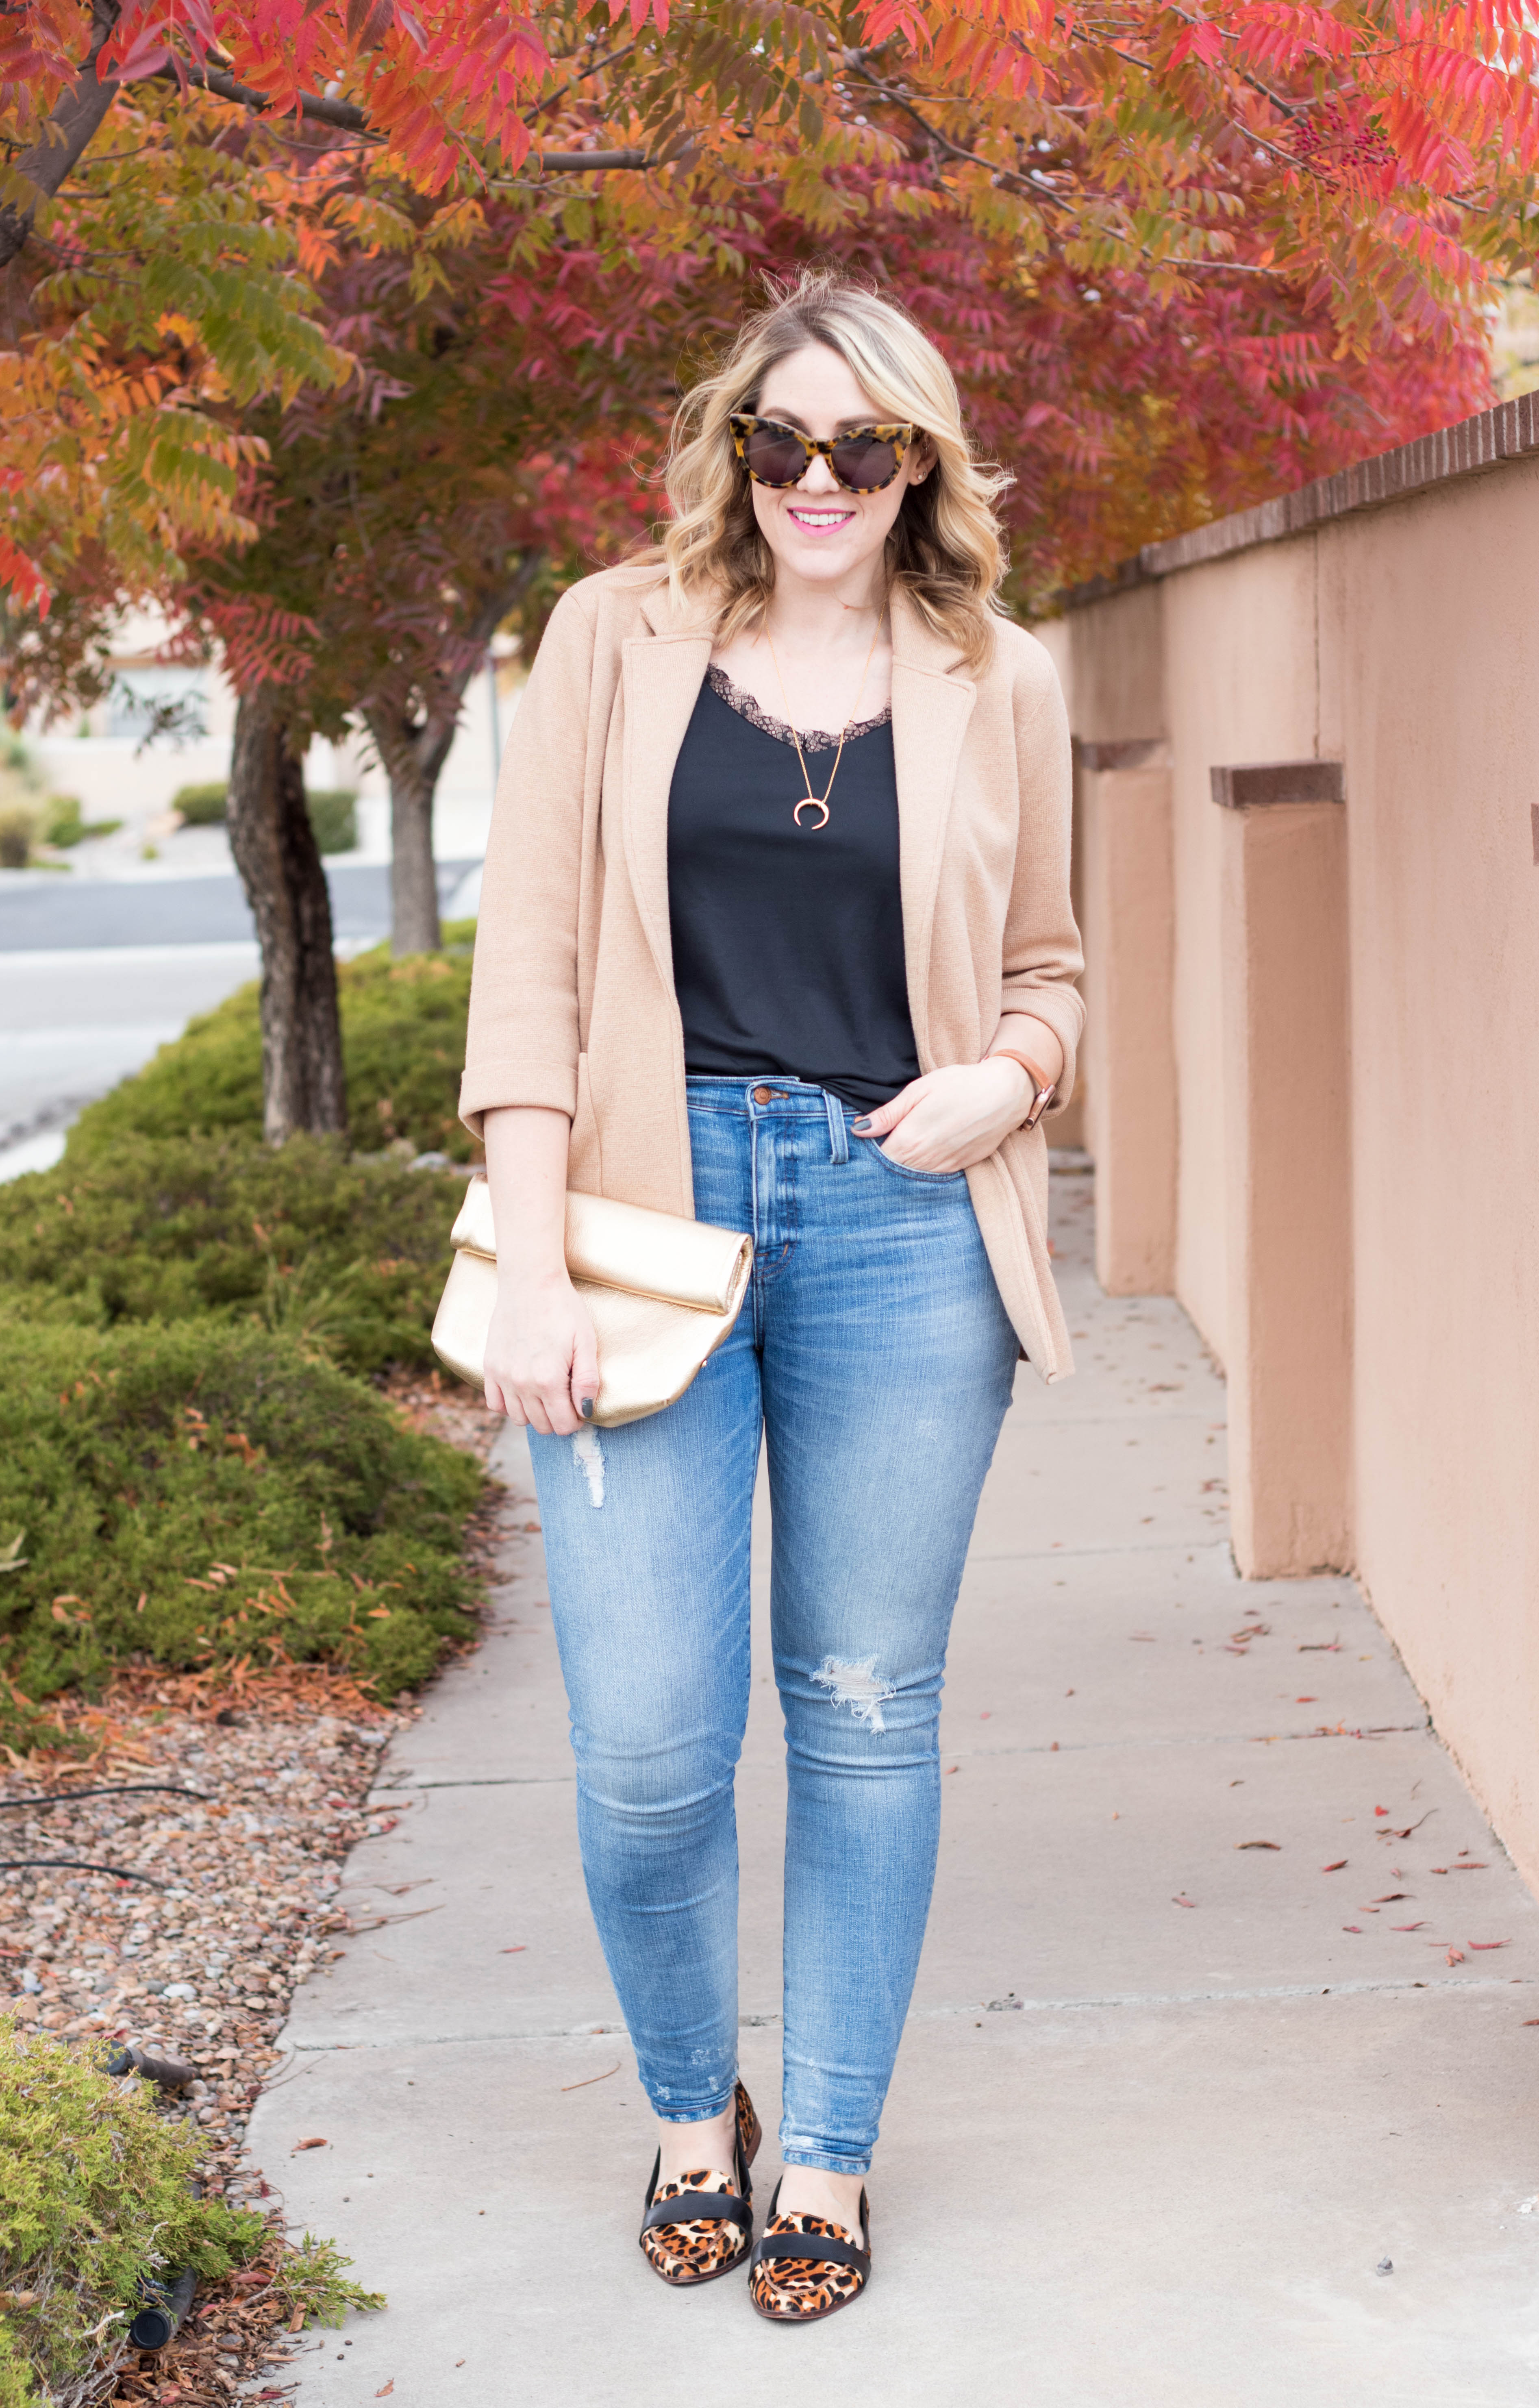 fall outfit target style #targetstyle #madewell #jcrew